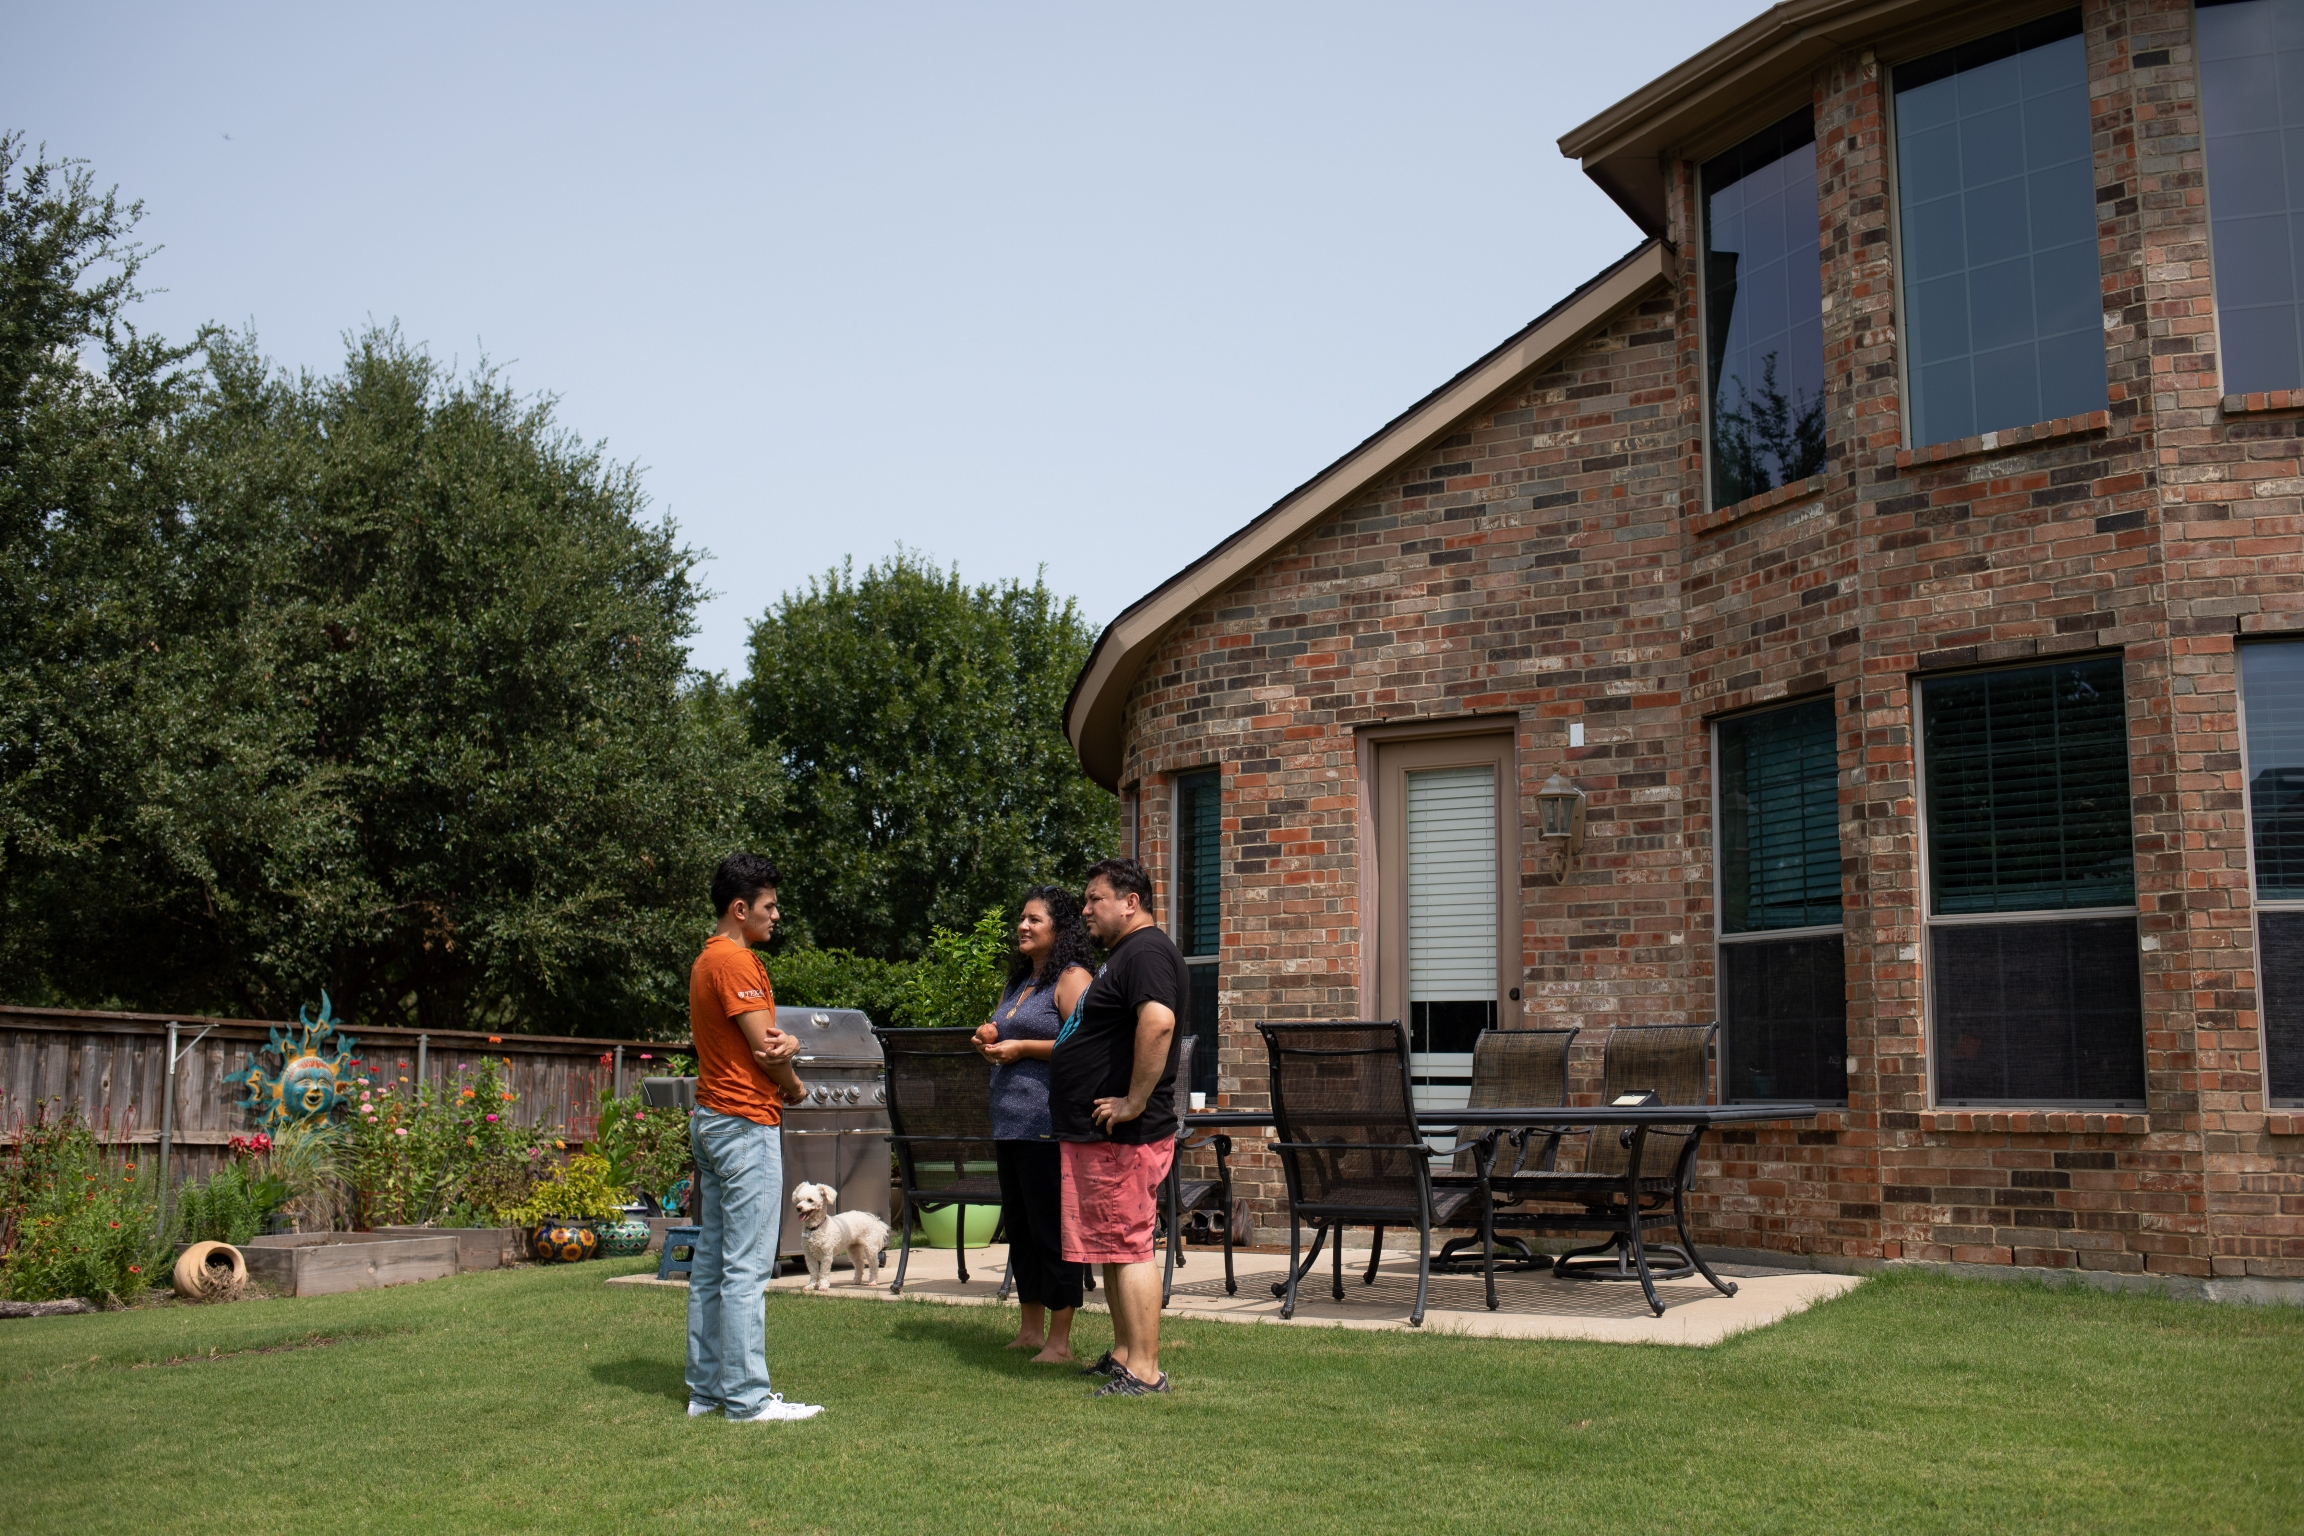 Izcan Ordaz, left, and his parents in the backyard of their home in Fort Worth, Texas.